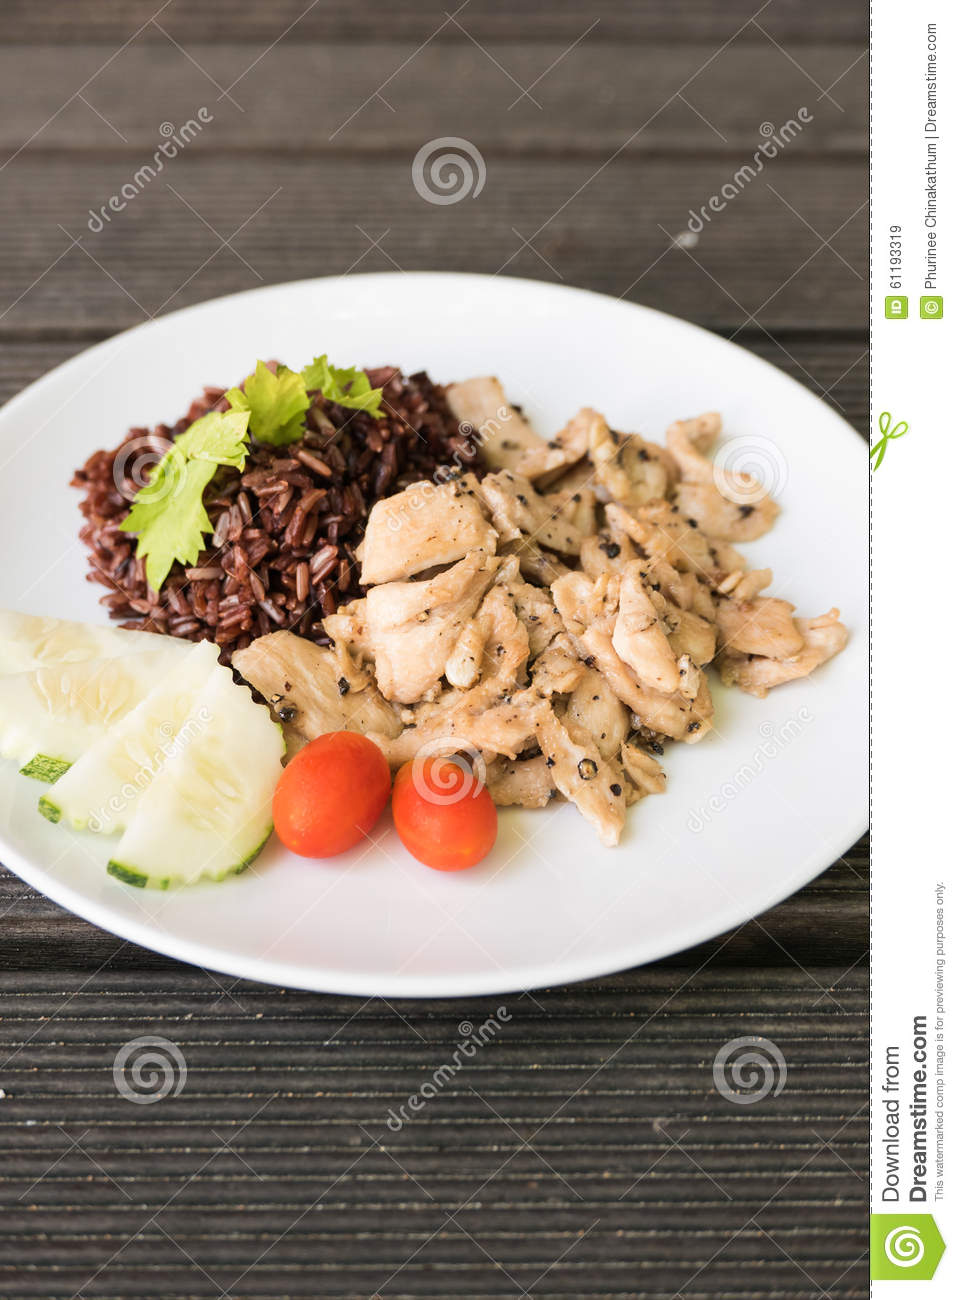 Chicken Stir Fried With Garlic And Pepper Stock Photo - Image ...